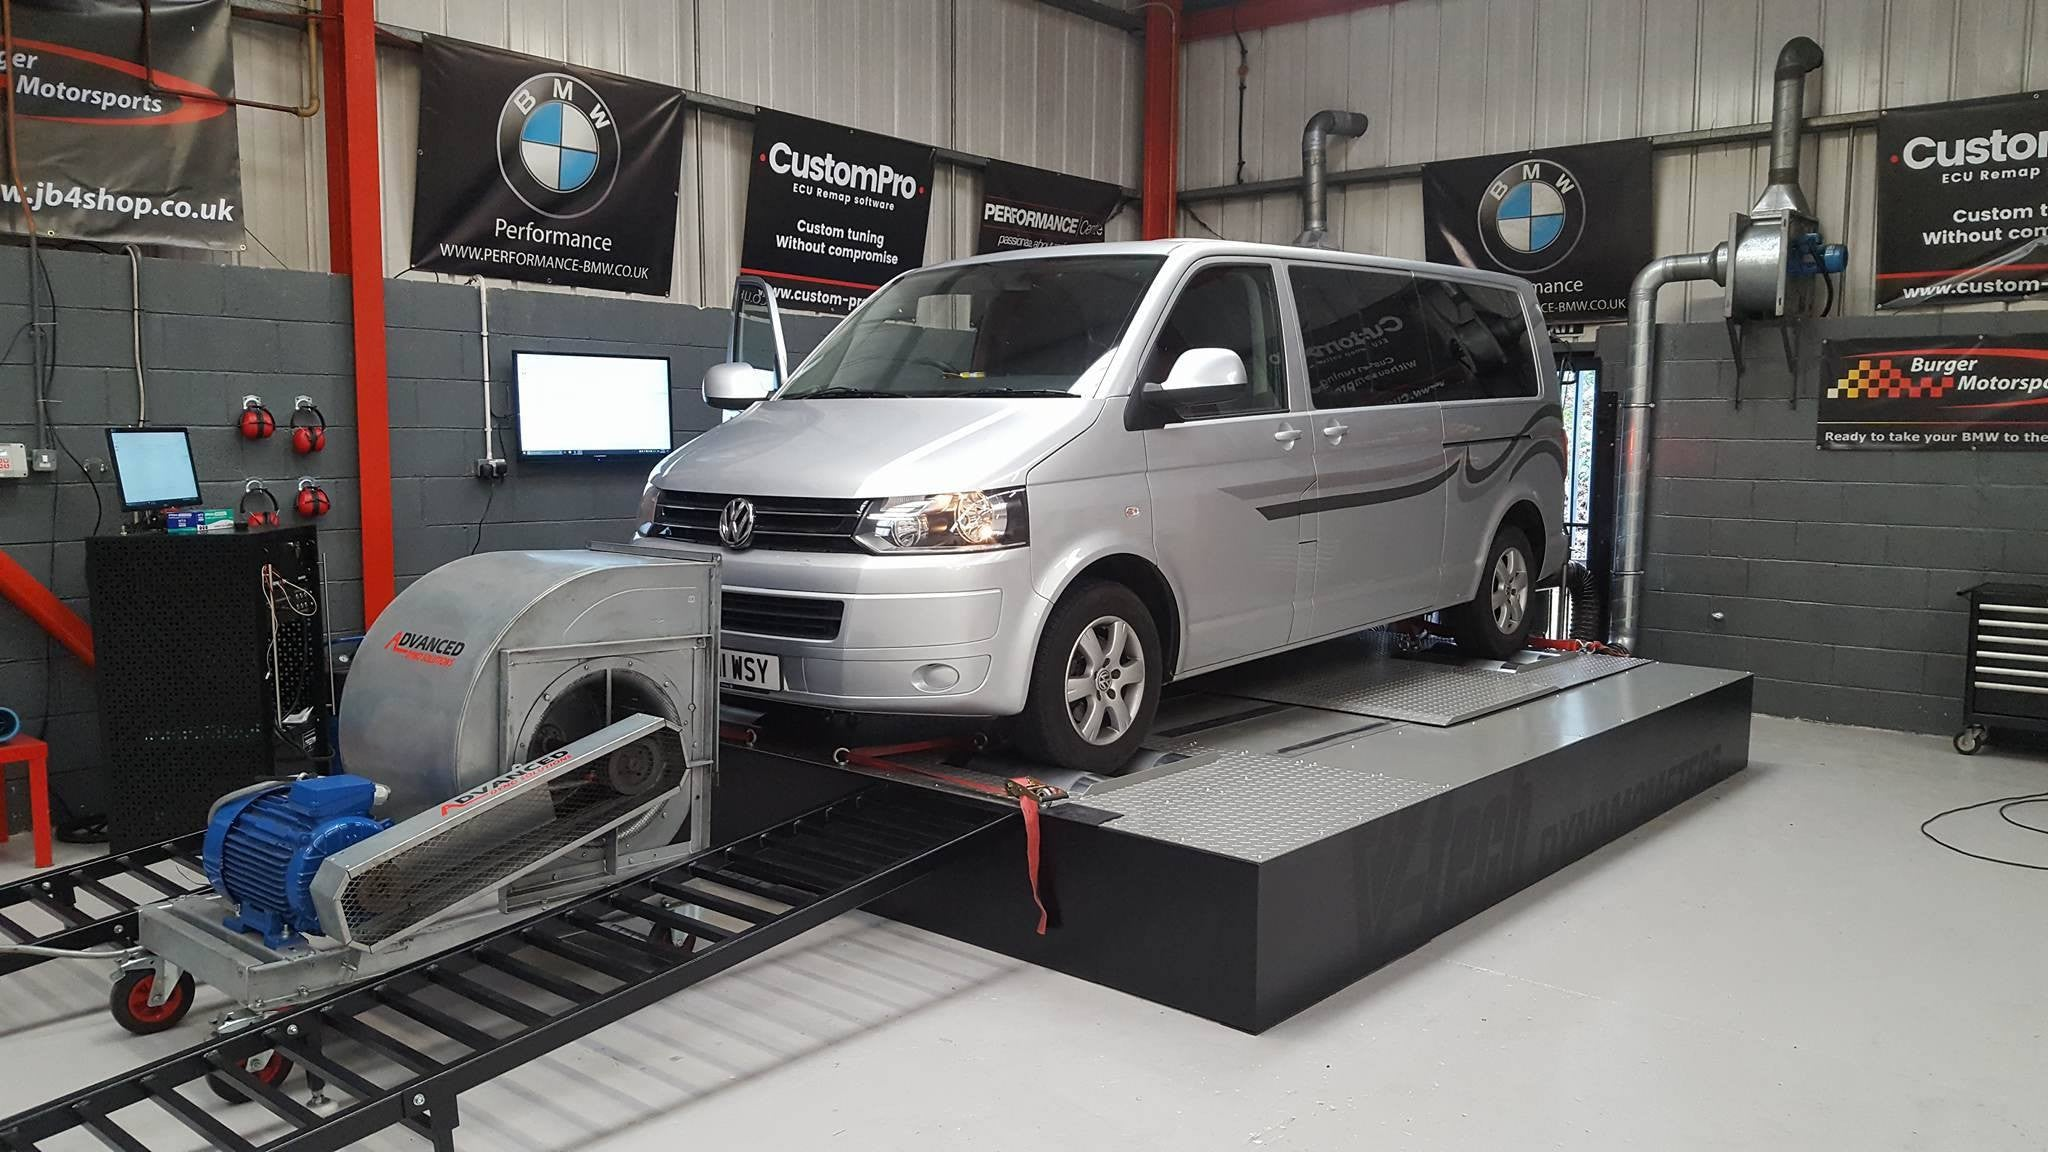 Volkswagen Transporter - Stage 1 & CustomPro